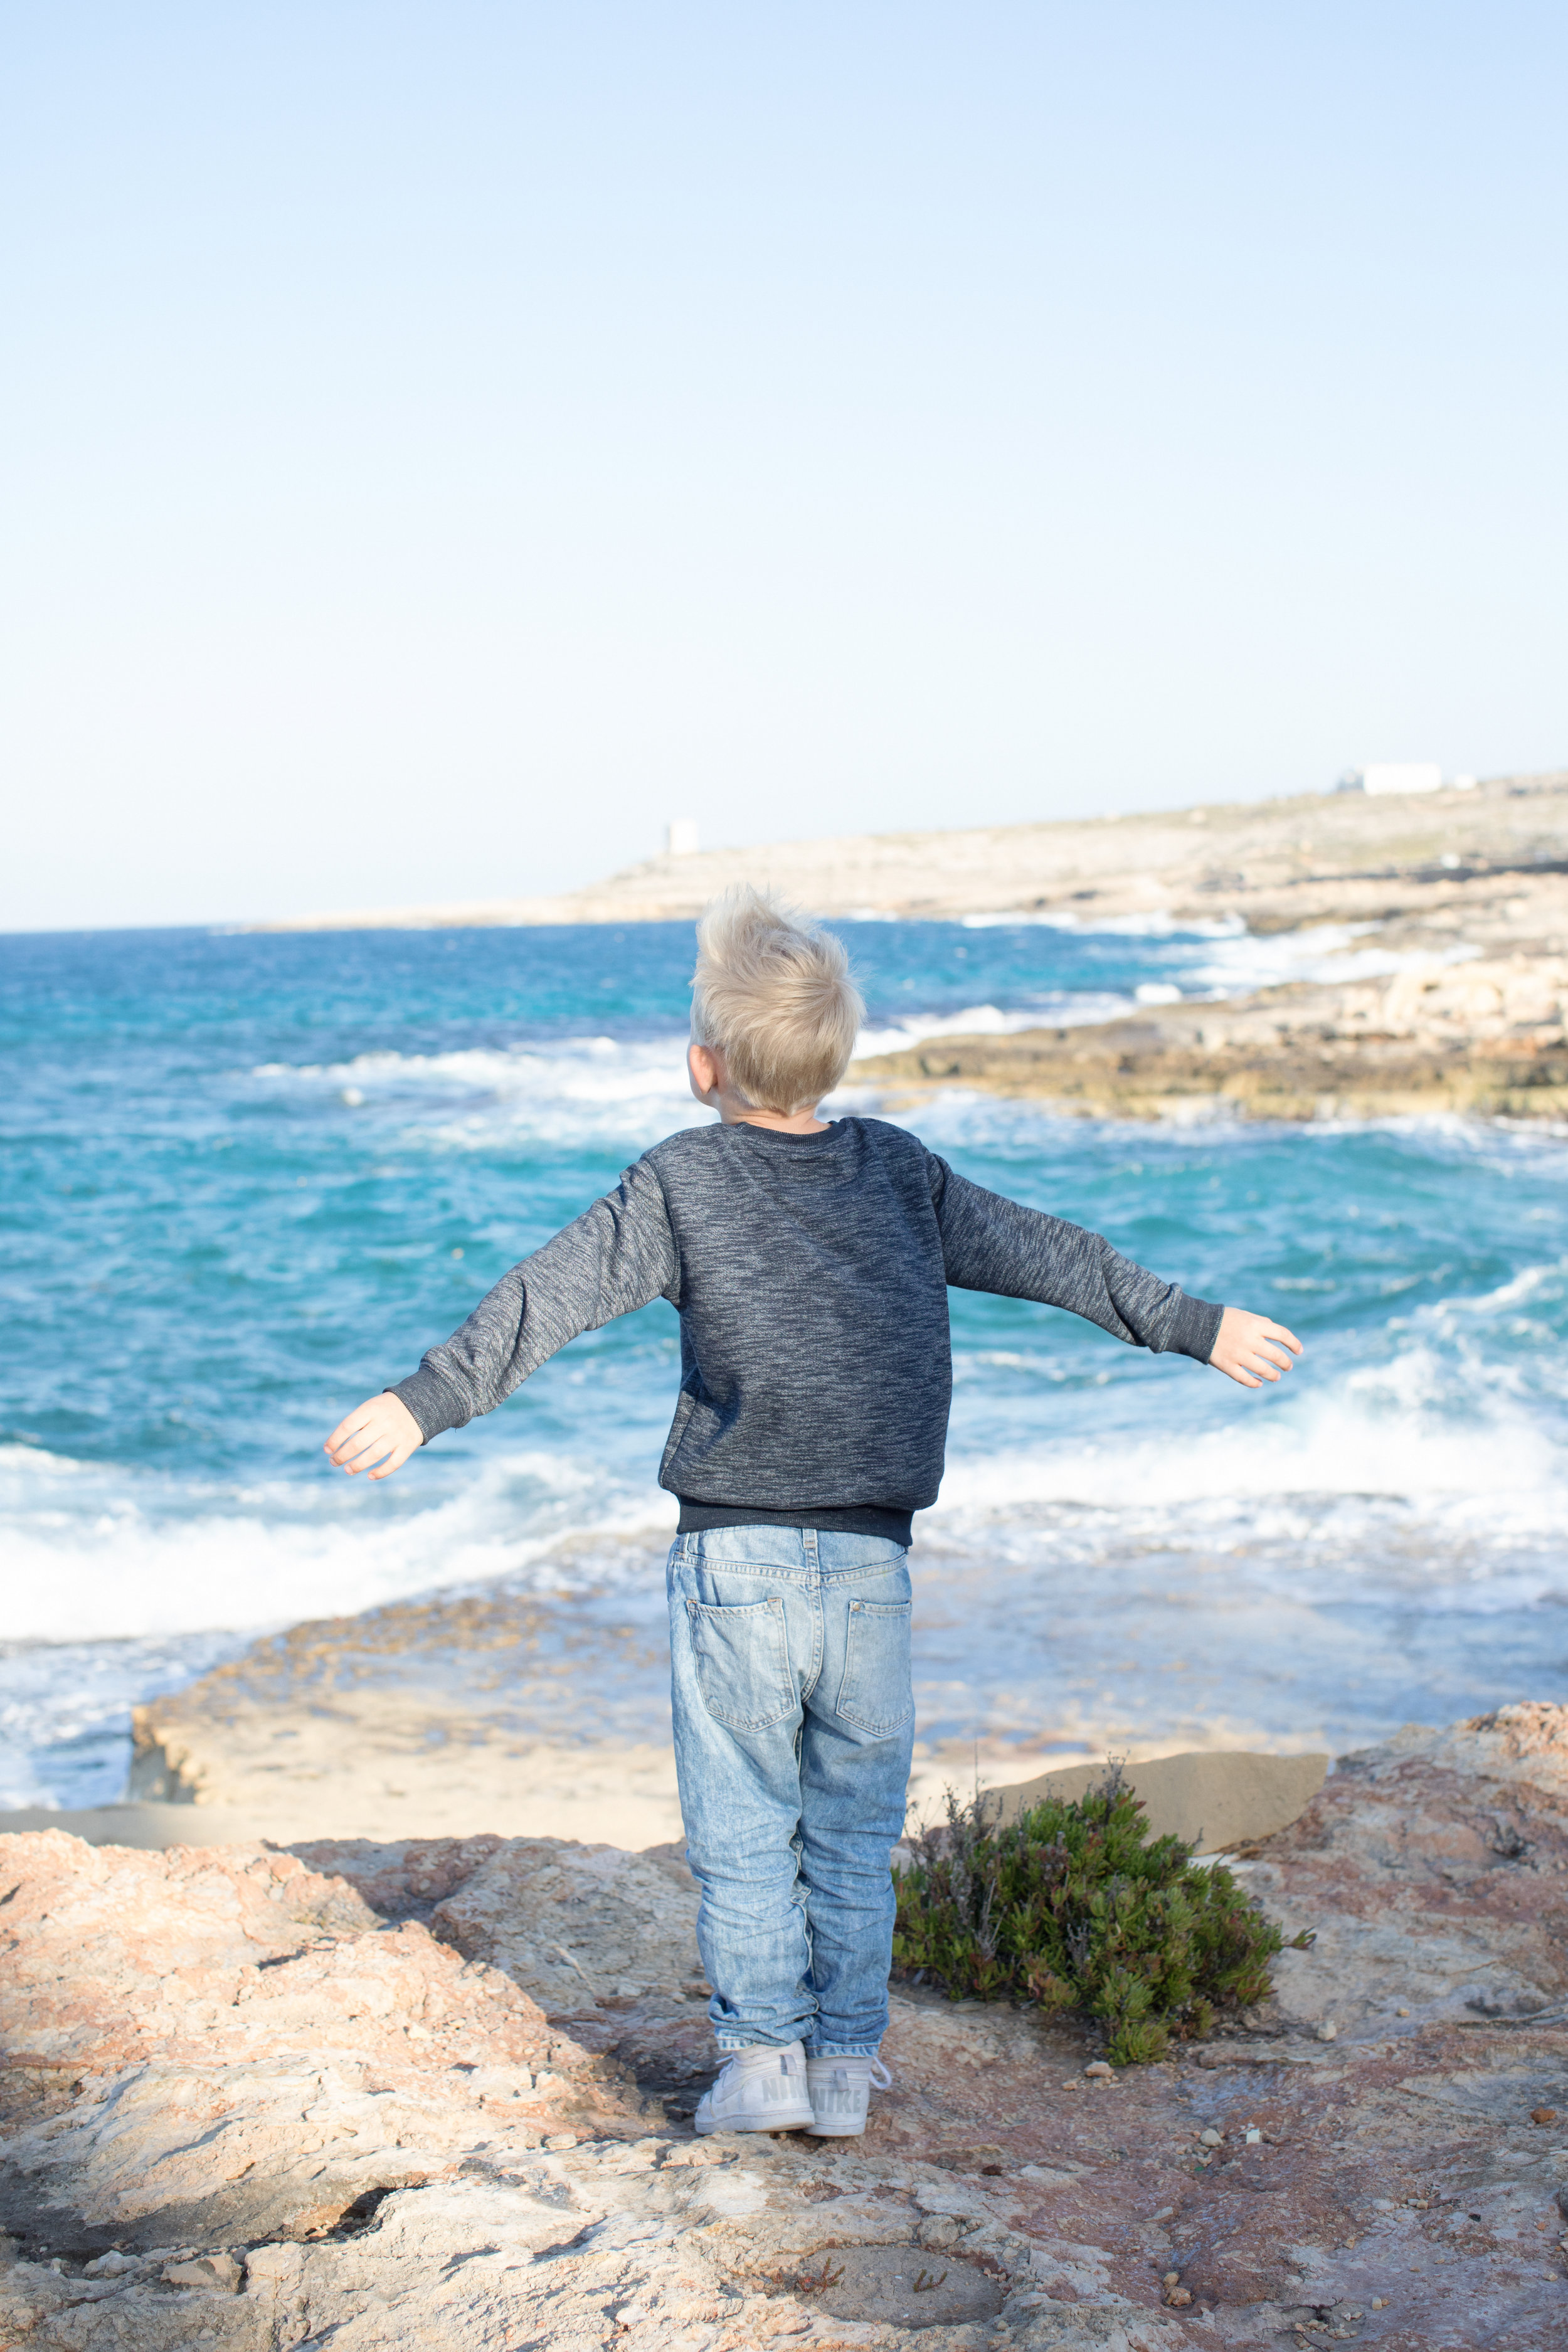 bahar-ic caghaq, mediterranean sea, children photographer malta, stormy sea, windy, whimsical happy child, cliffs, playing, childhood